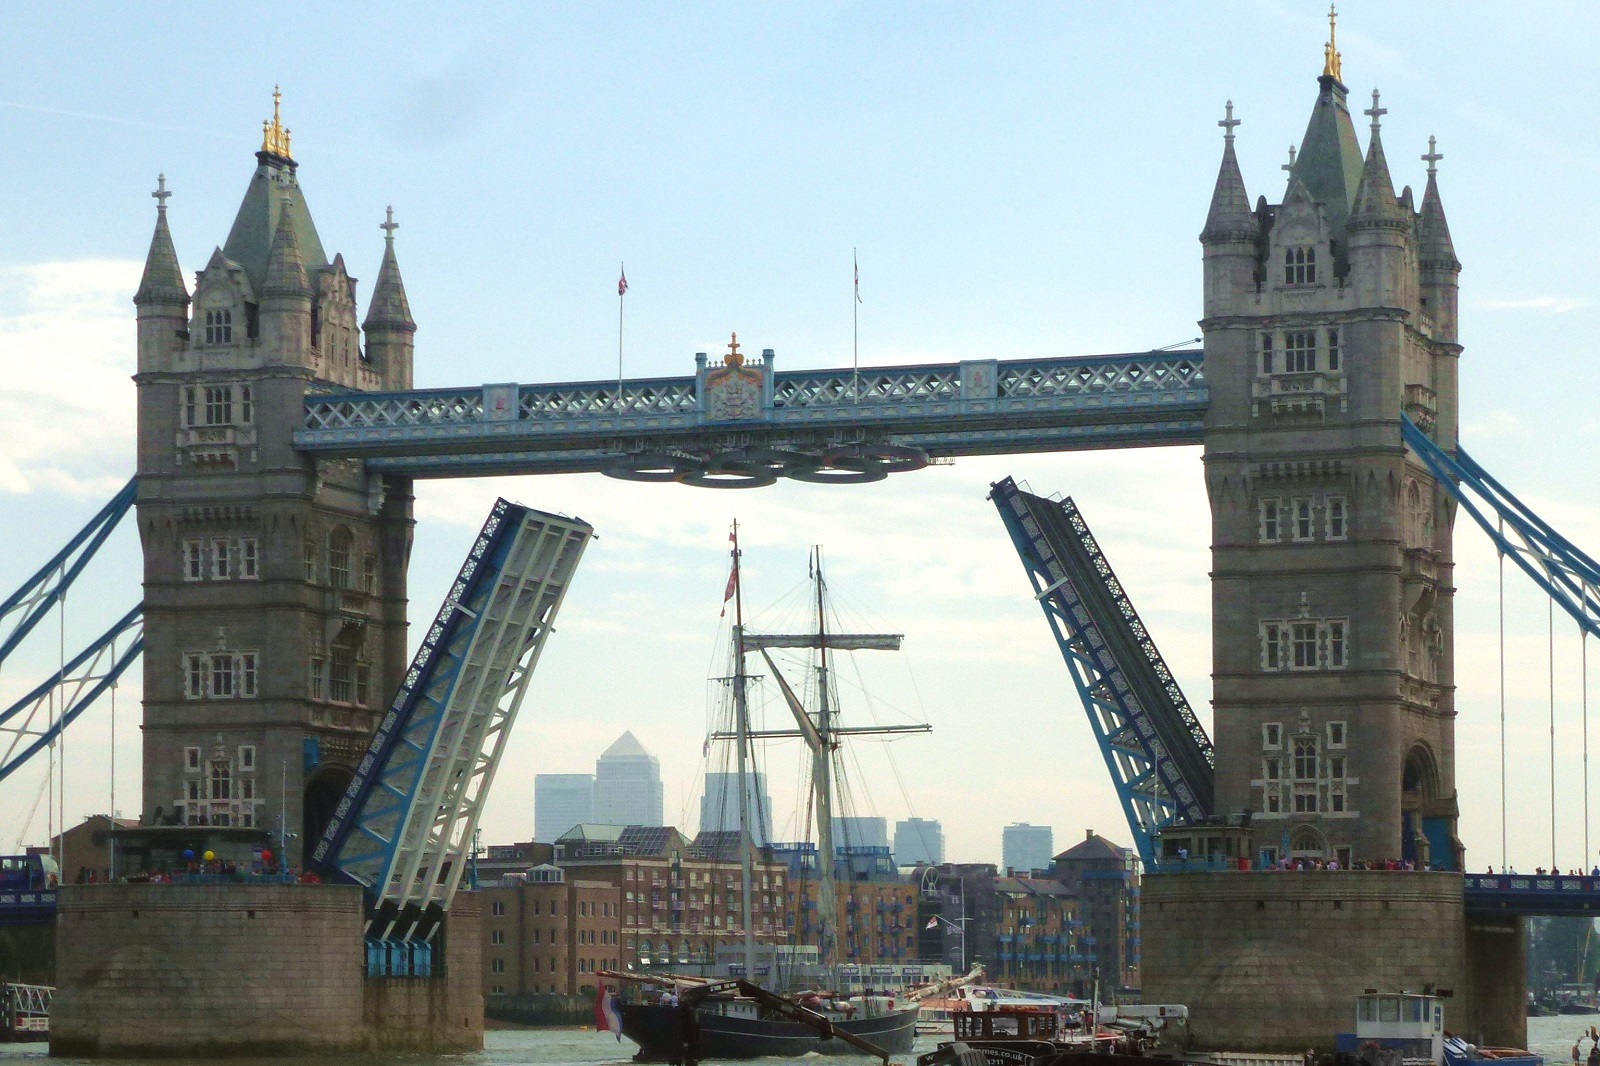 London Attraction Holiday, Tower Bridge, London, United Kingdom, Sides lifted